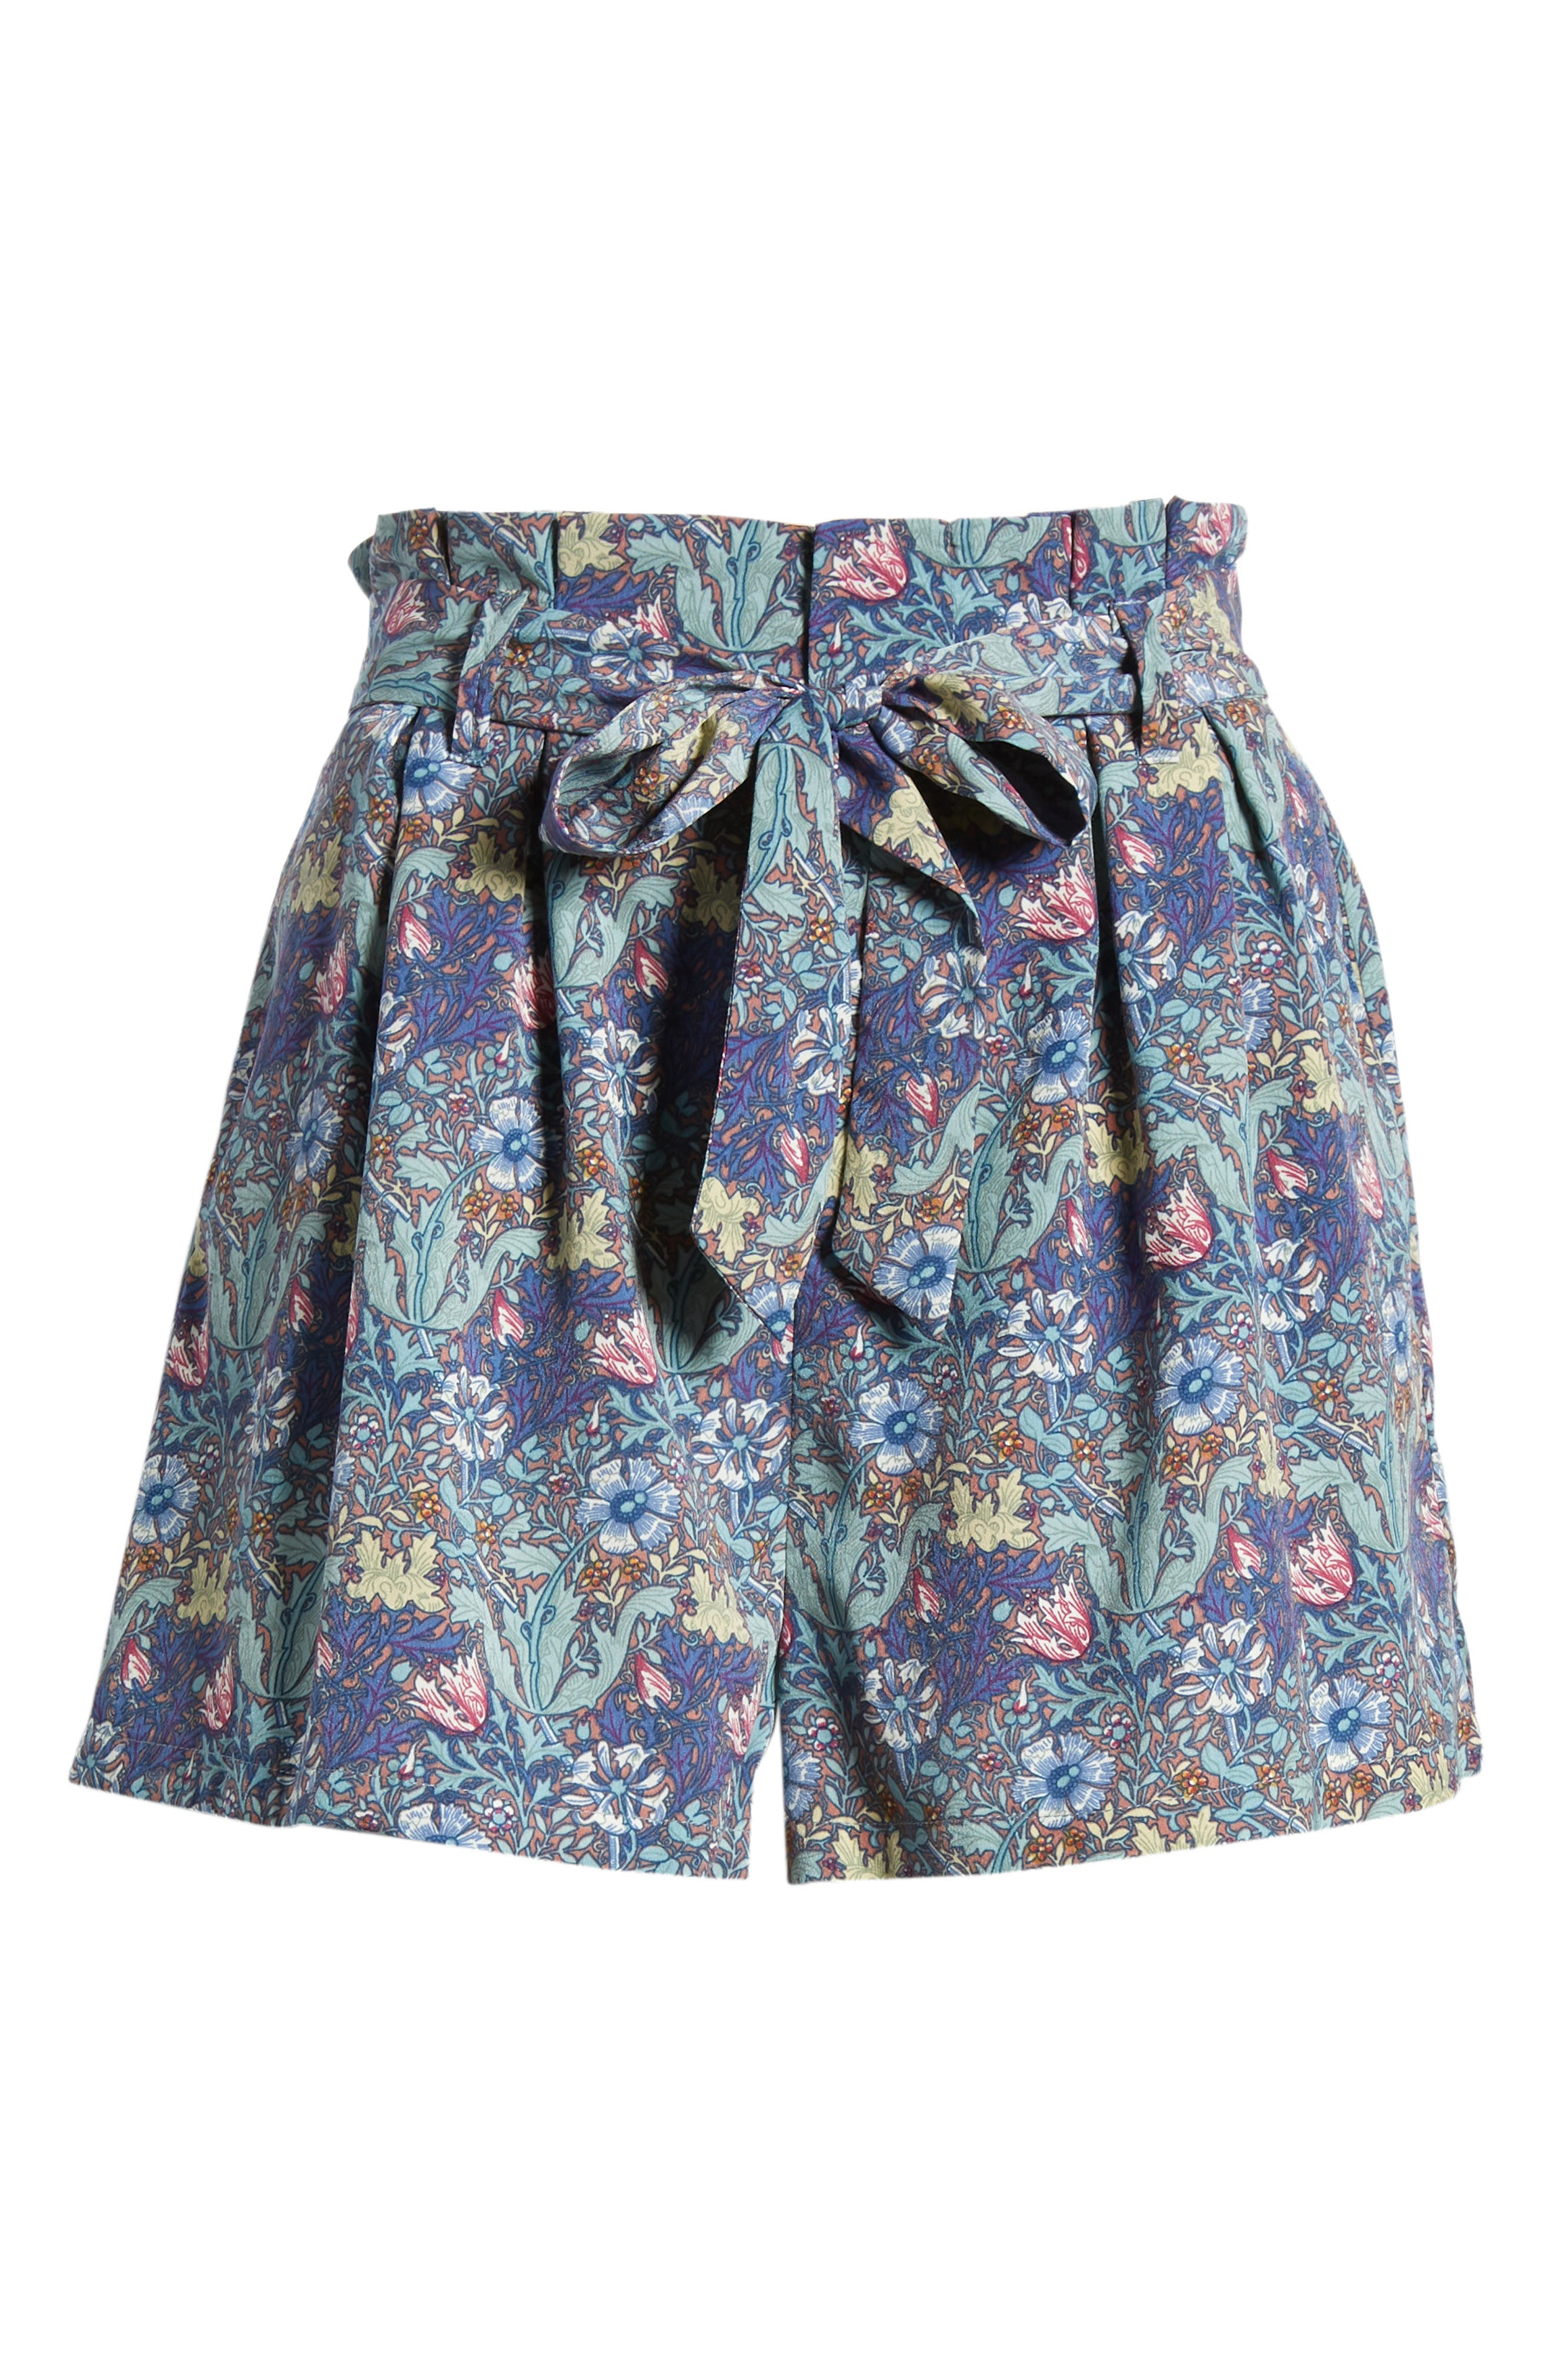 Bishop + Young Floral Paperbag Shorts,                             Alternate thumbnail 6, color,                             Print